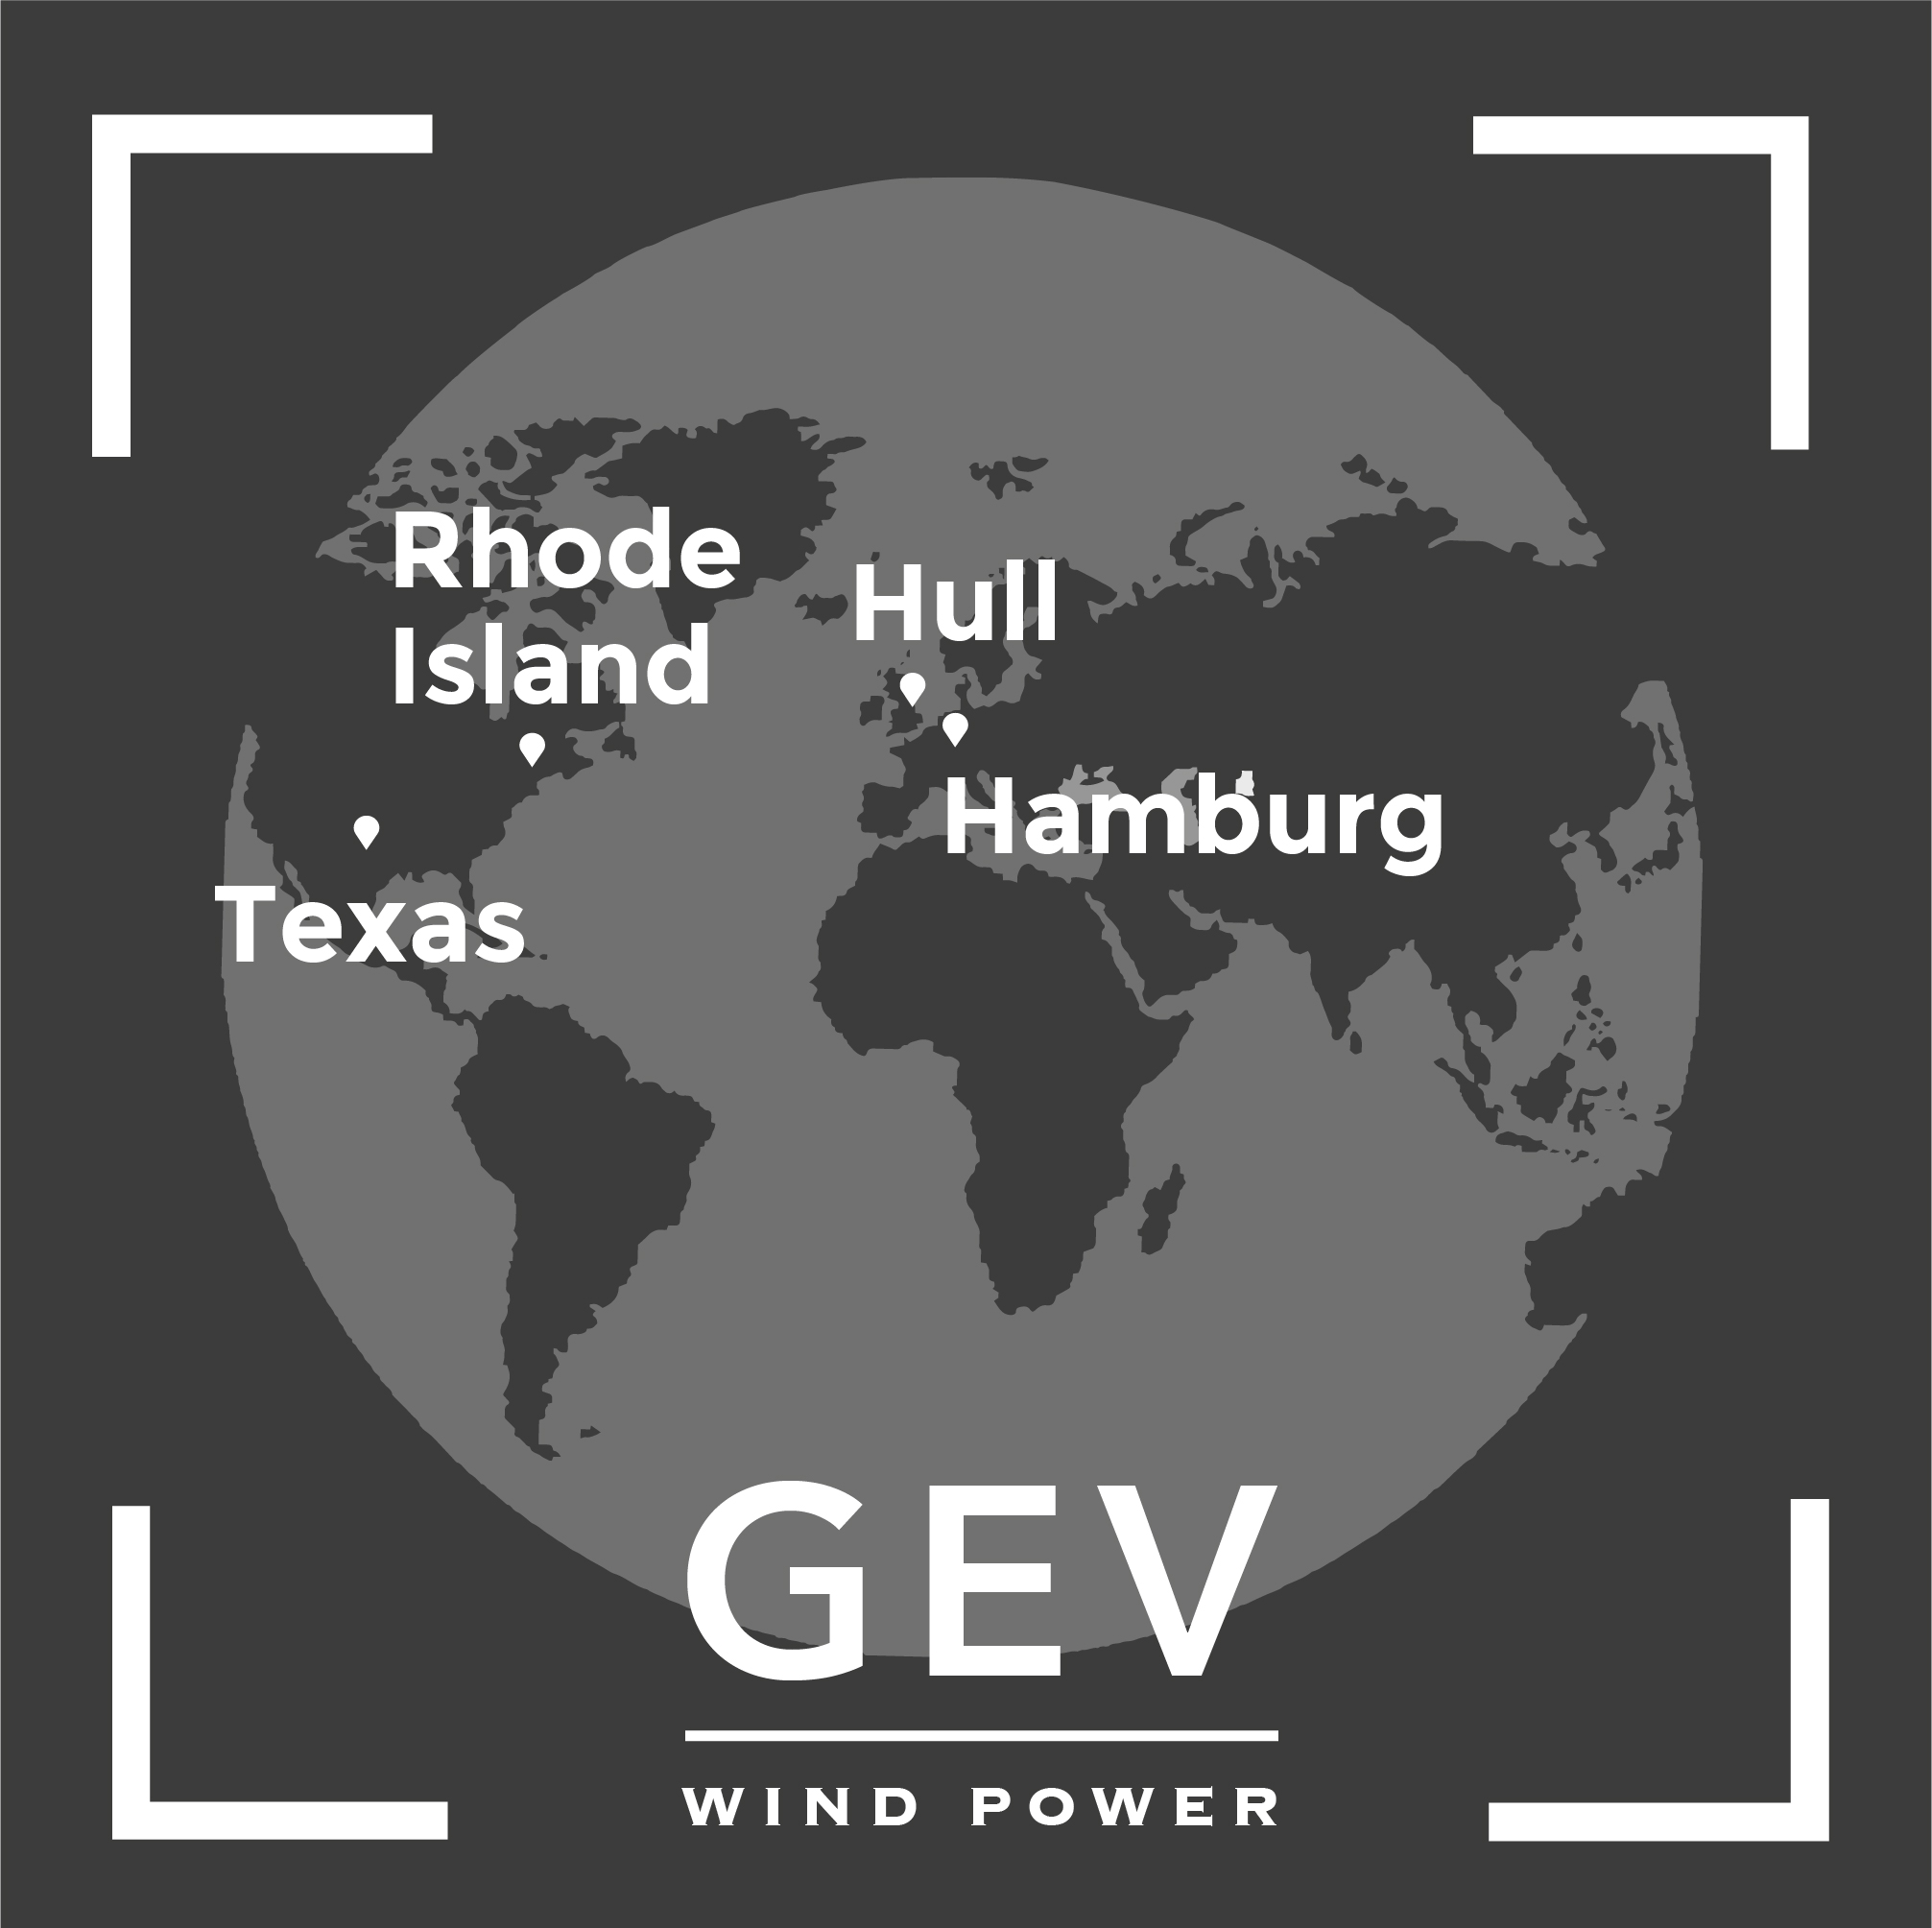 Finalists for The Humber Renewables Awards, 2019 - GEV Wind